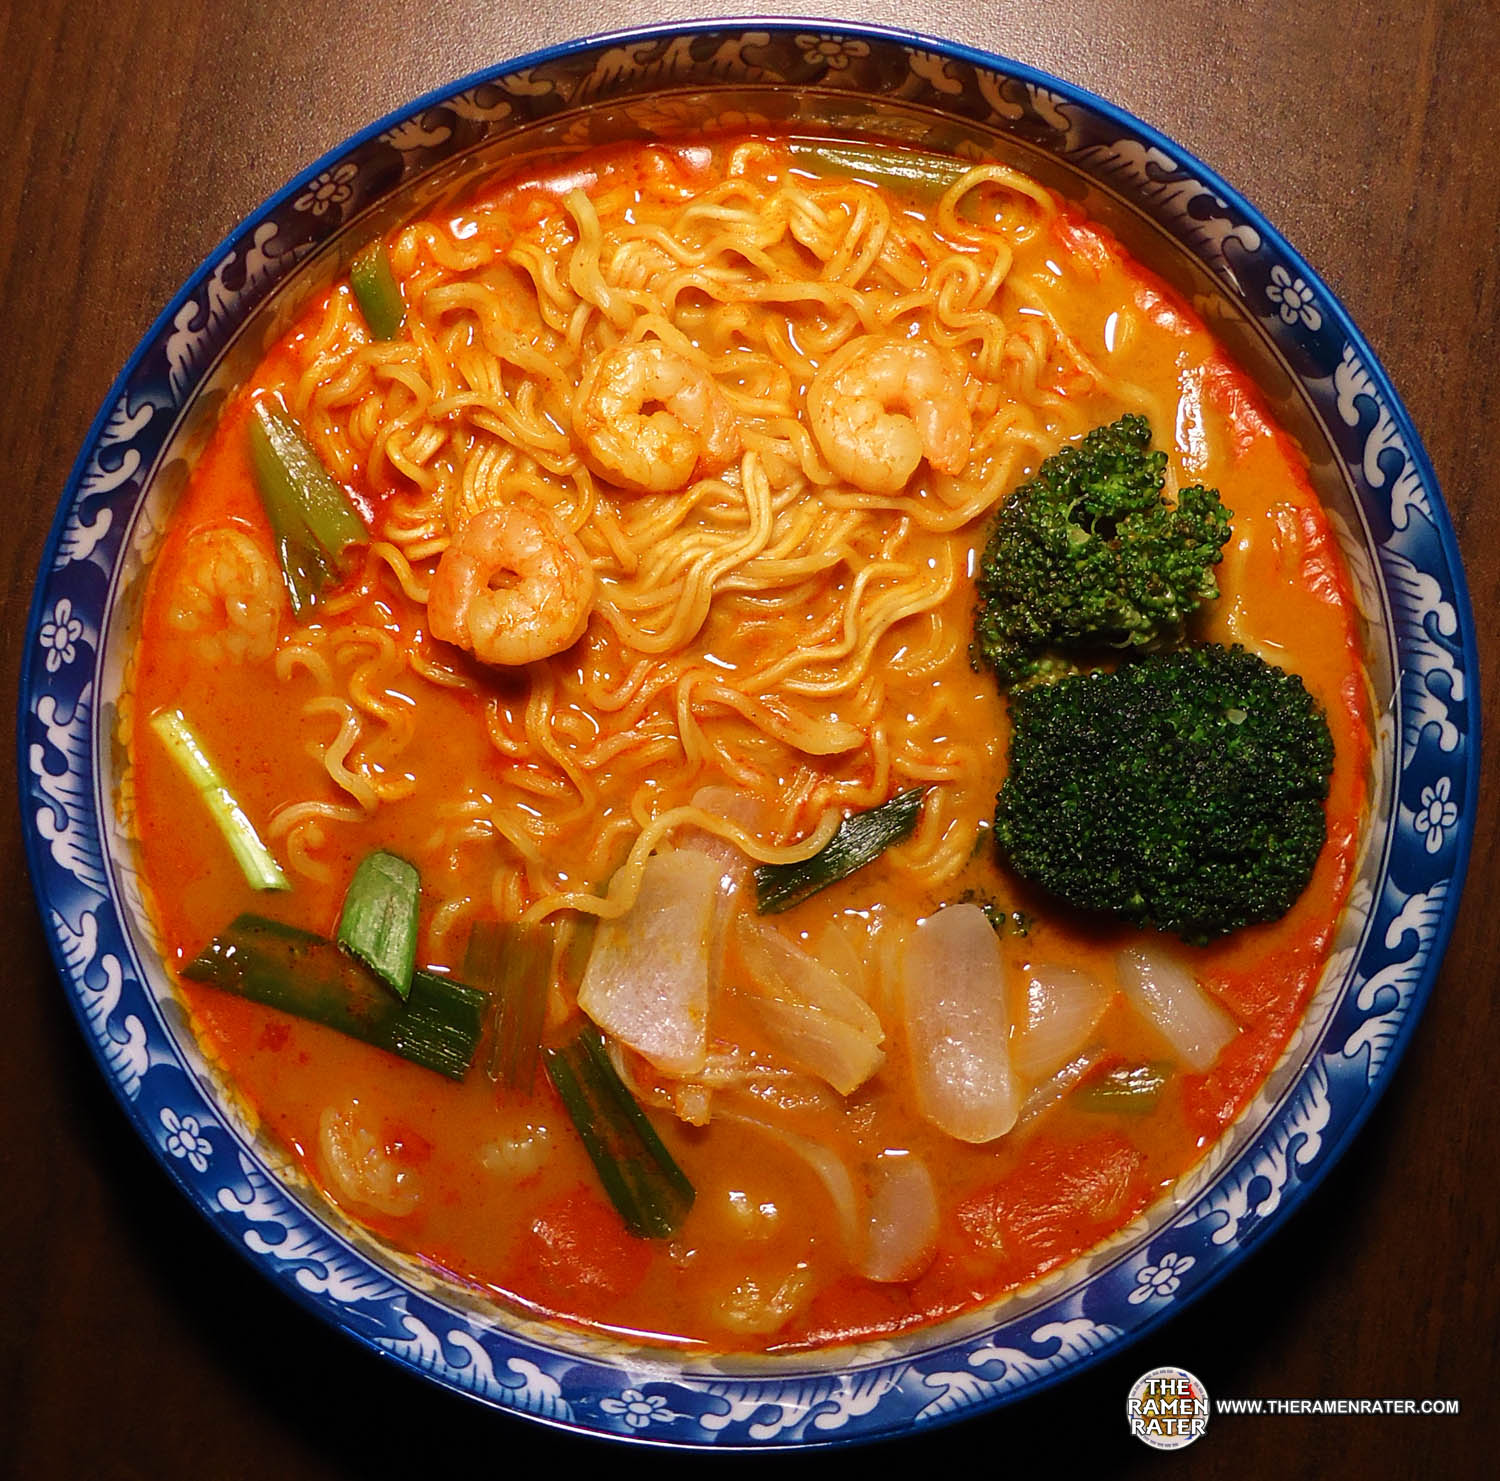 MyKUALI PENANG WHITE CURRY INSTANT NOODLE # TOP RANKING ASIA